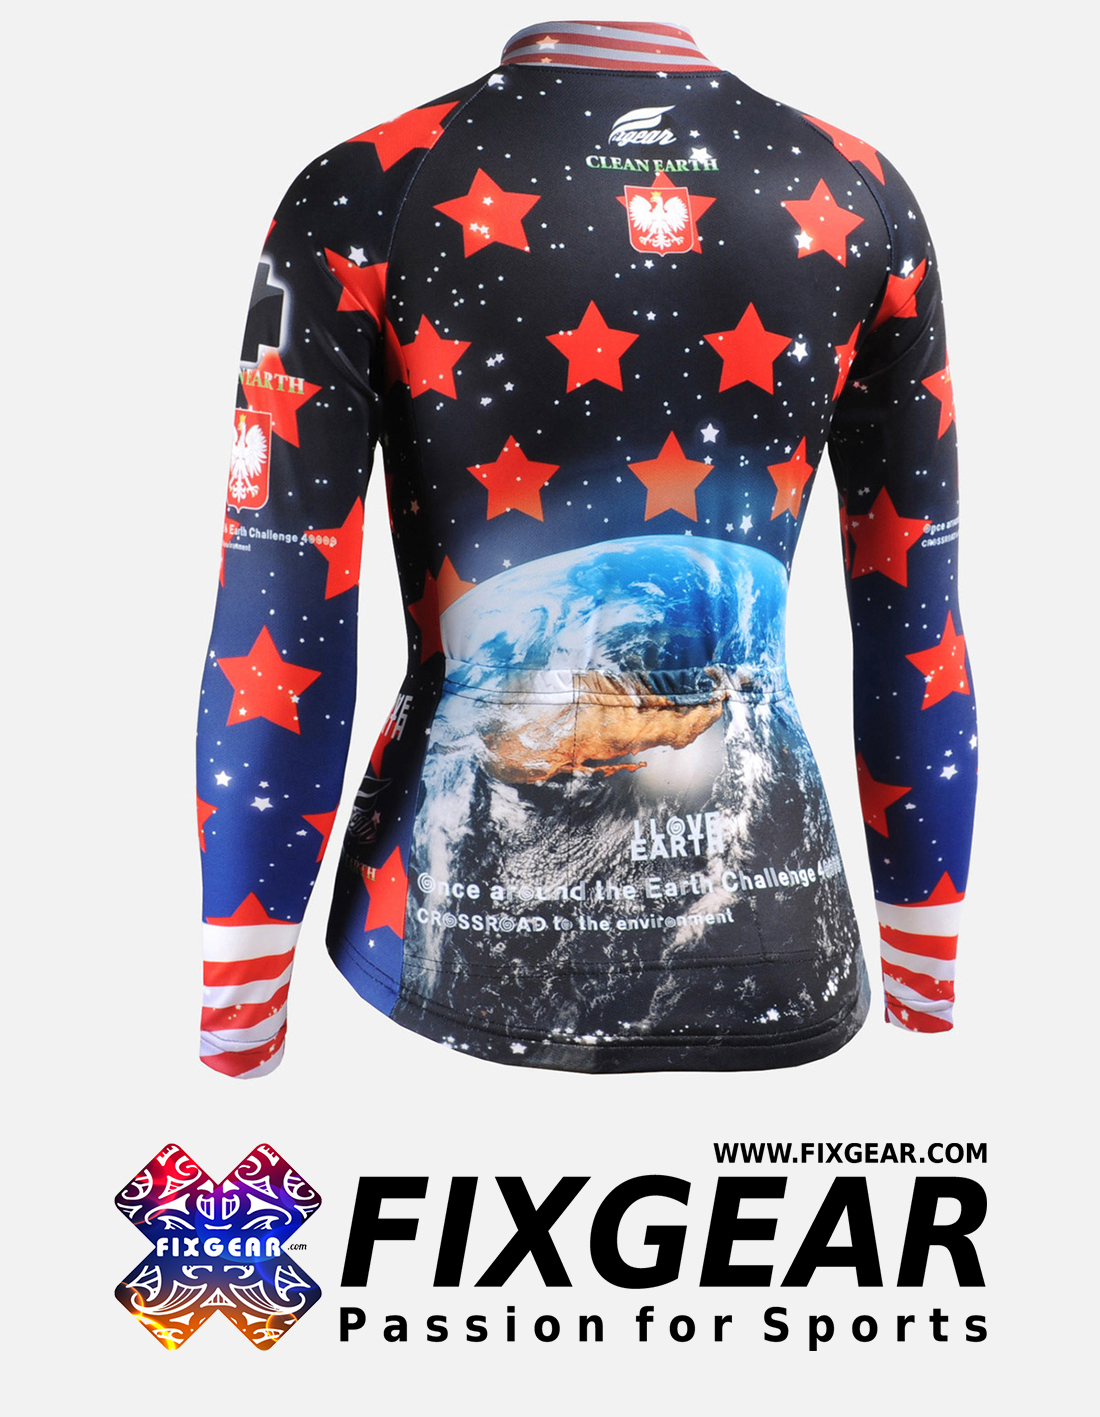 FIXGEAR CS-W1001 Women's Long Sleeve Jersey